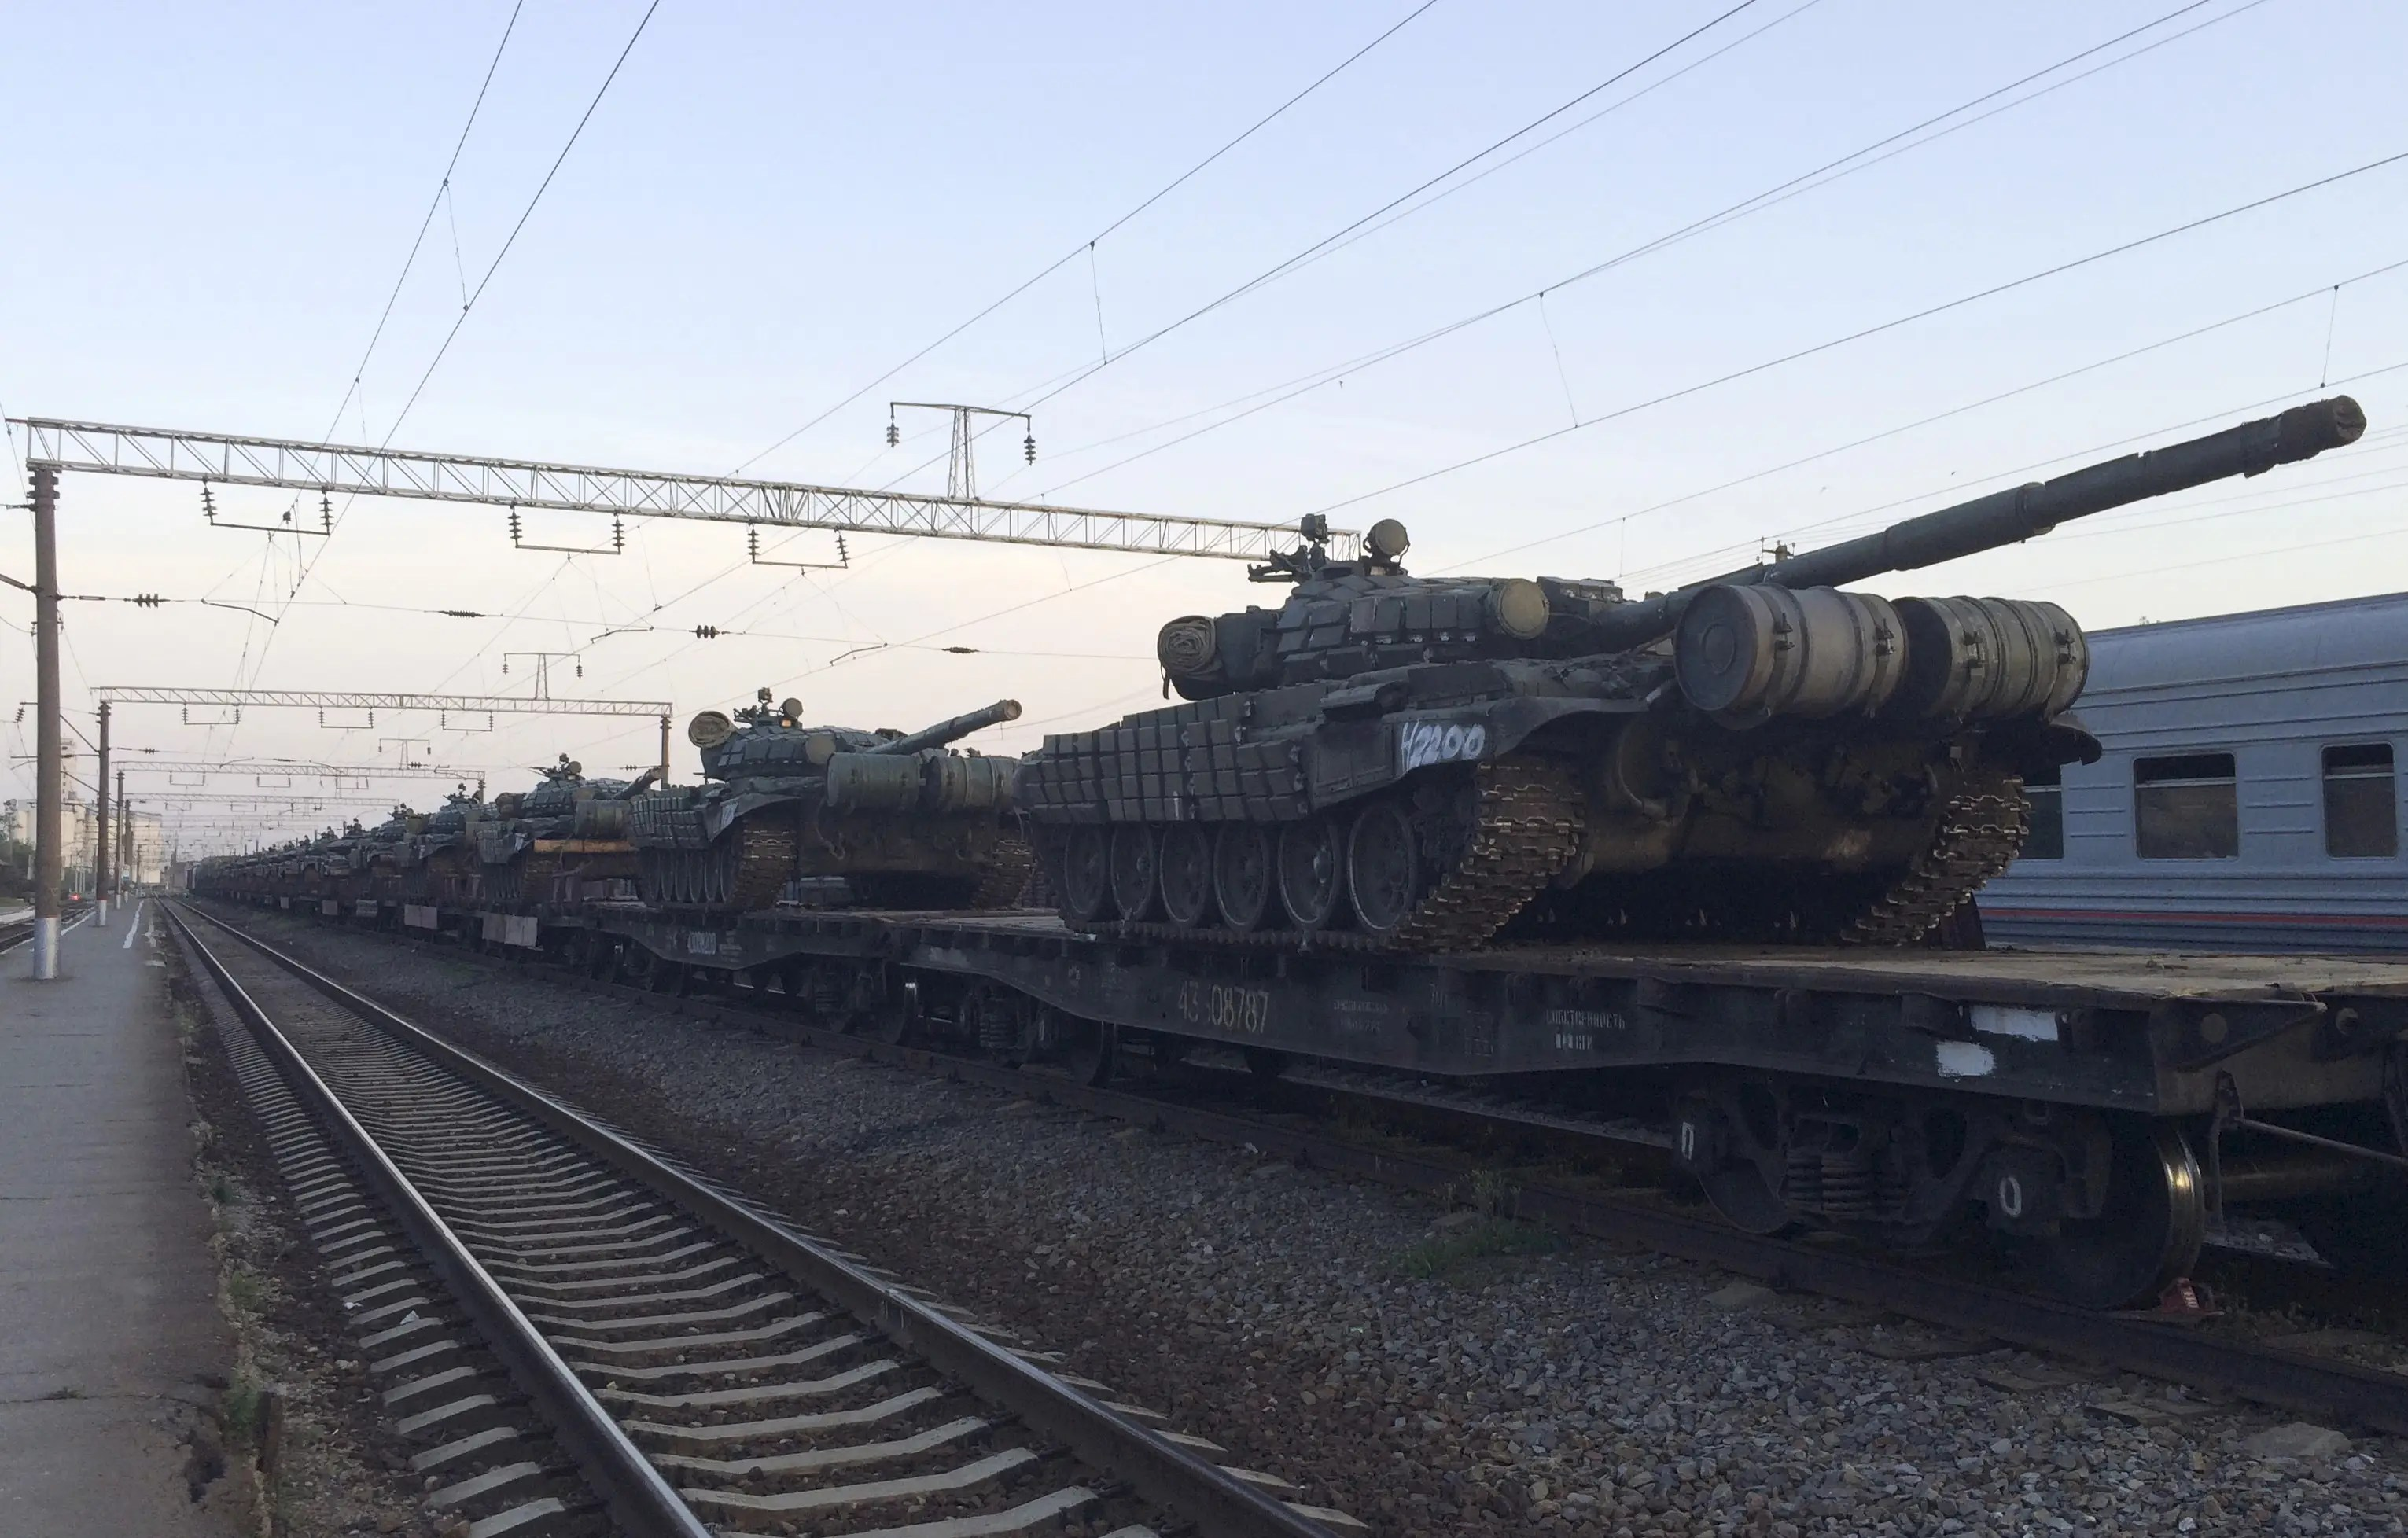 Tanks are seen on a freight train shortly after its arrival at a railway station in the Russian southern town of Matveev Kurgan, near the Russian-Ukrainian border in Rostov region, Russia, May 26, 2015.